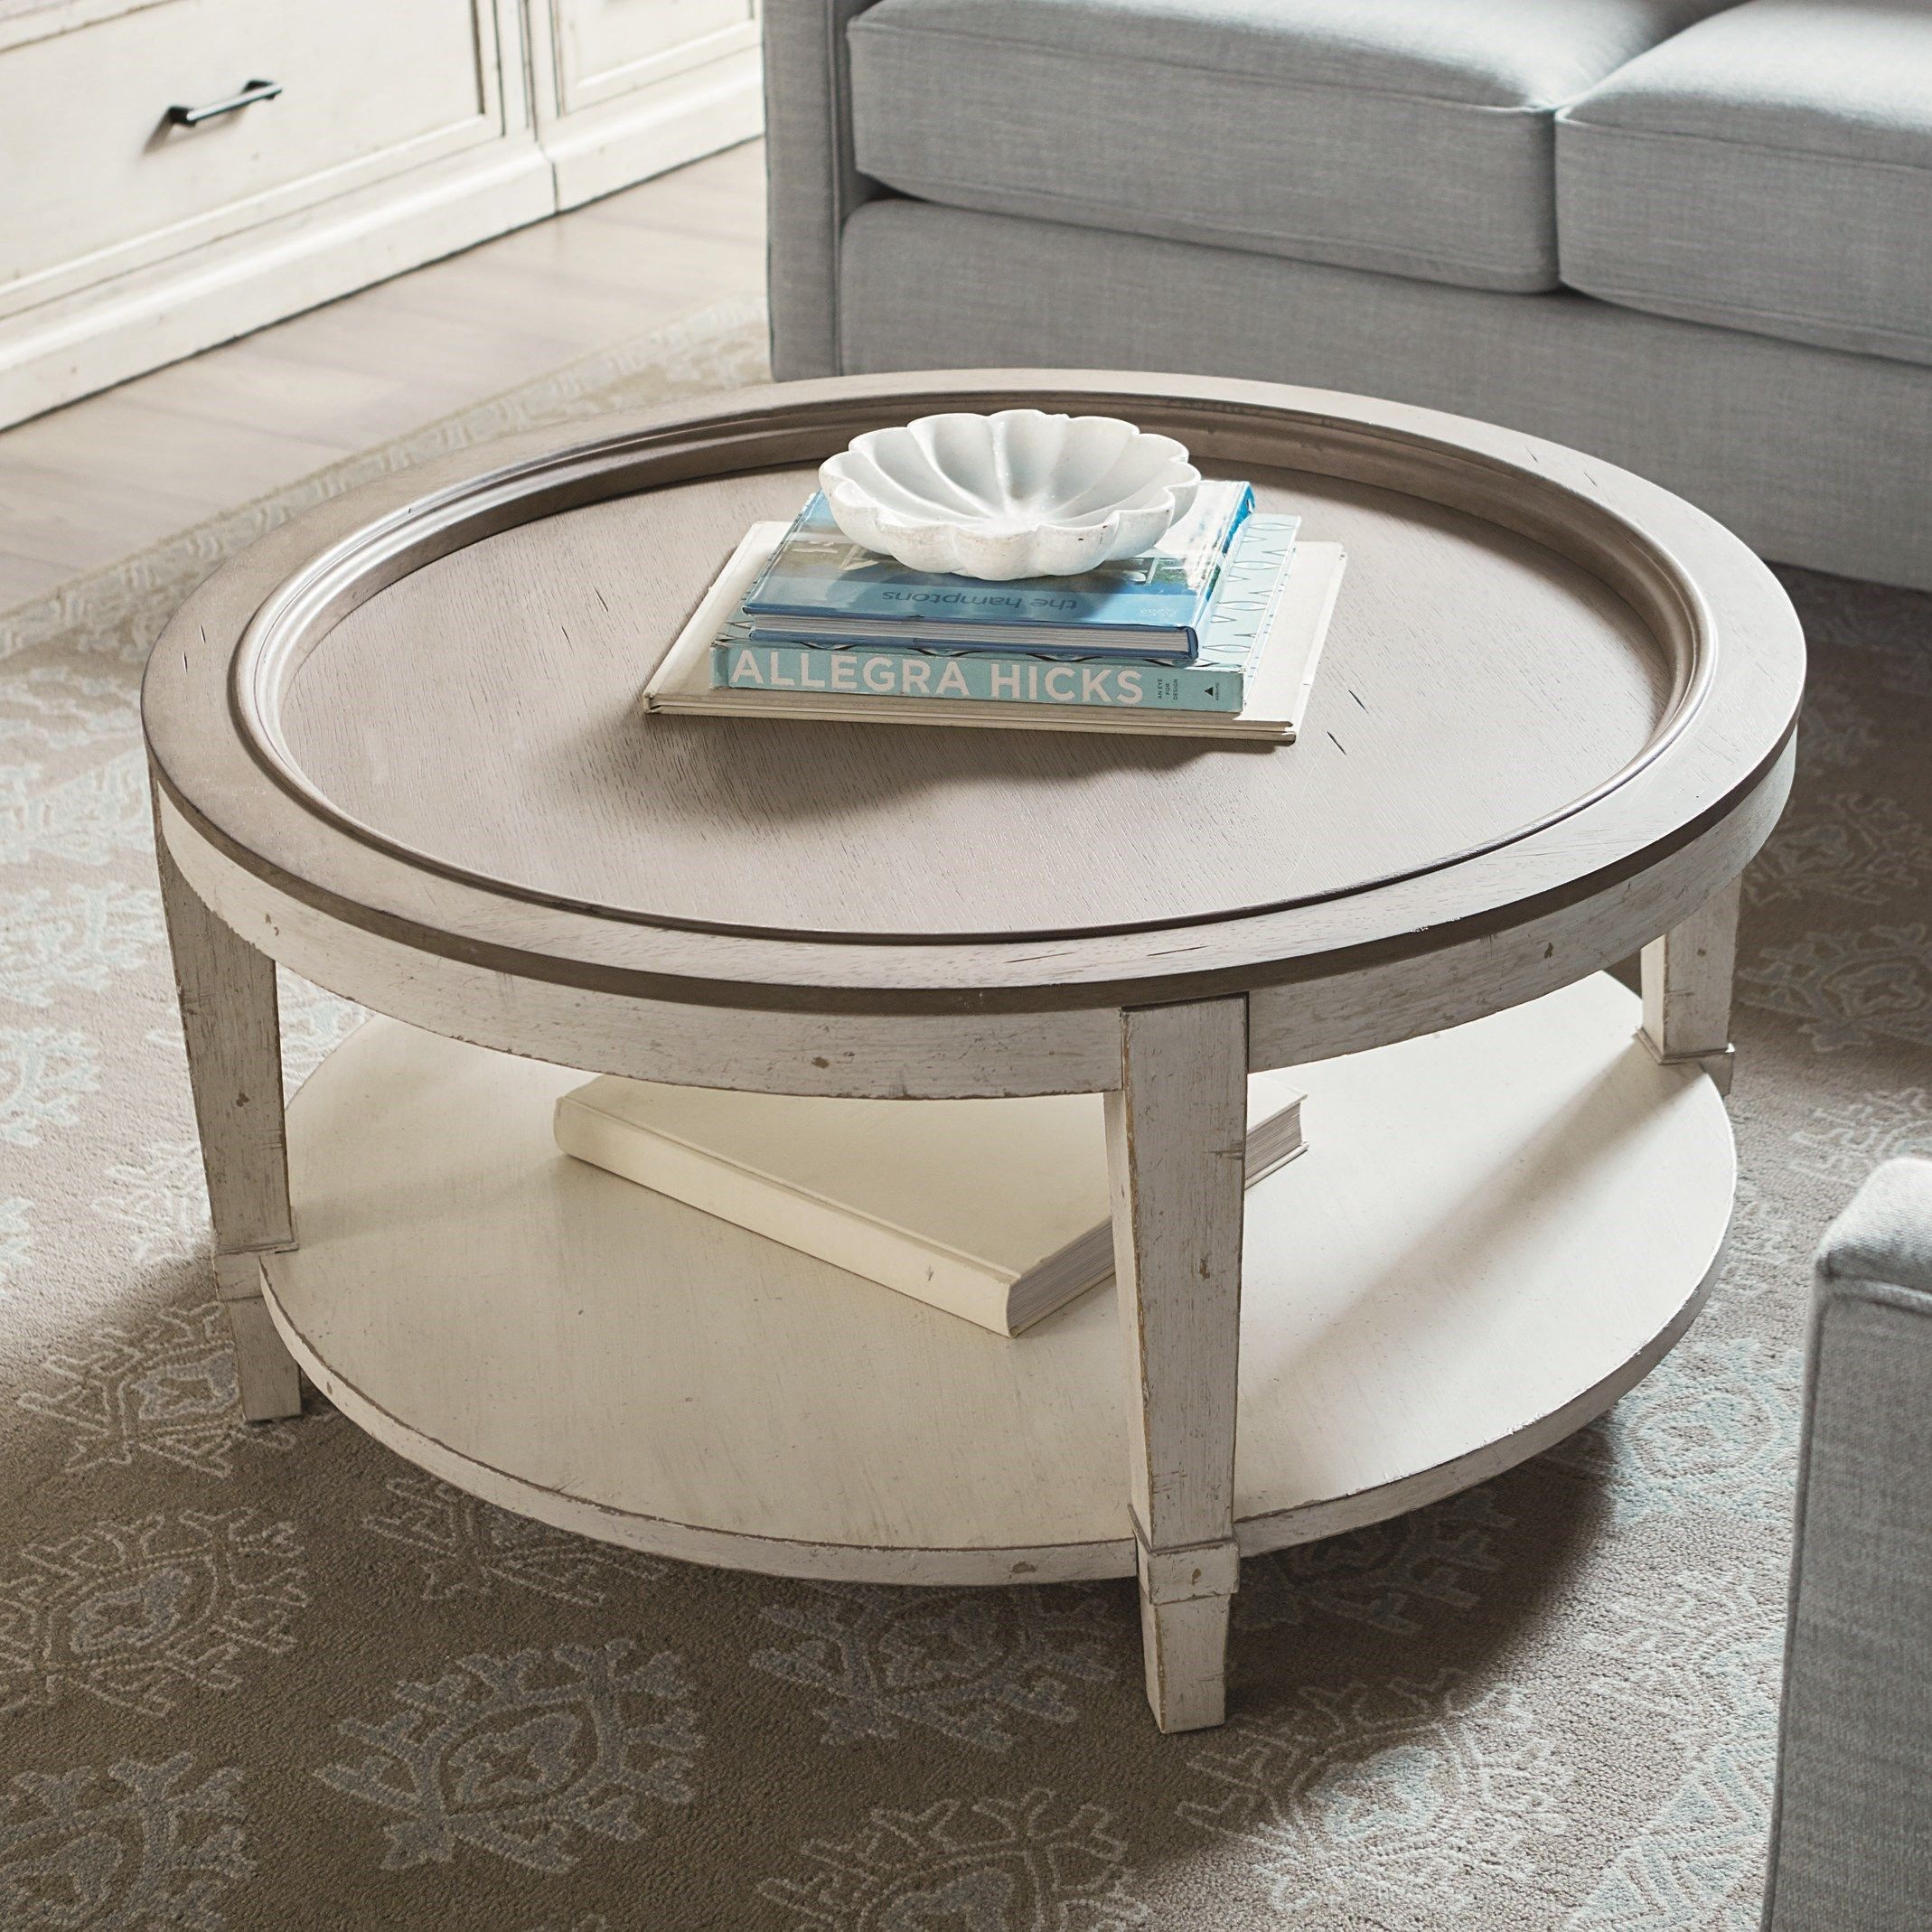 Bella Round Cocktail Table By Bassett At Virginia Furniture Market Round Cocktail Tables Cocktail Tables White Round Coffee Table [ 2138 x 2138 Pixel ]